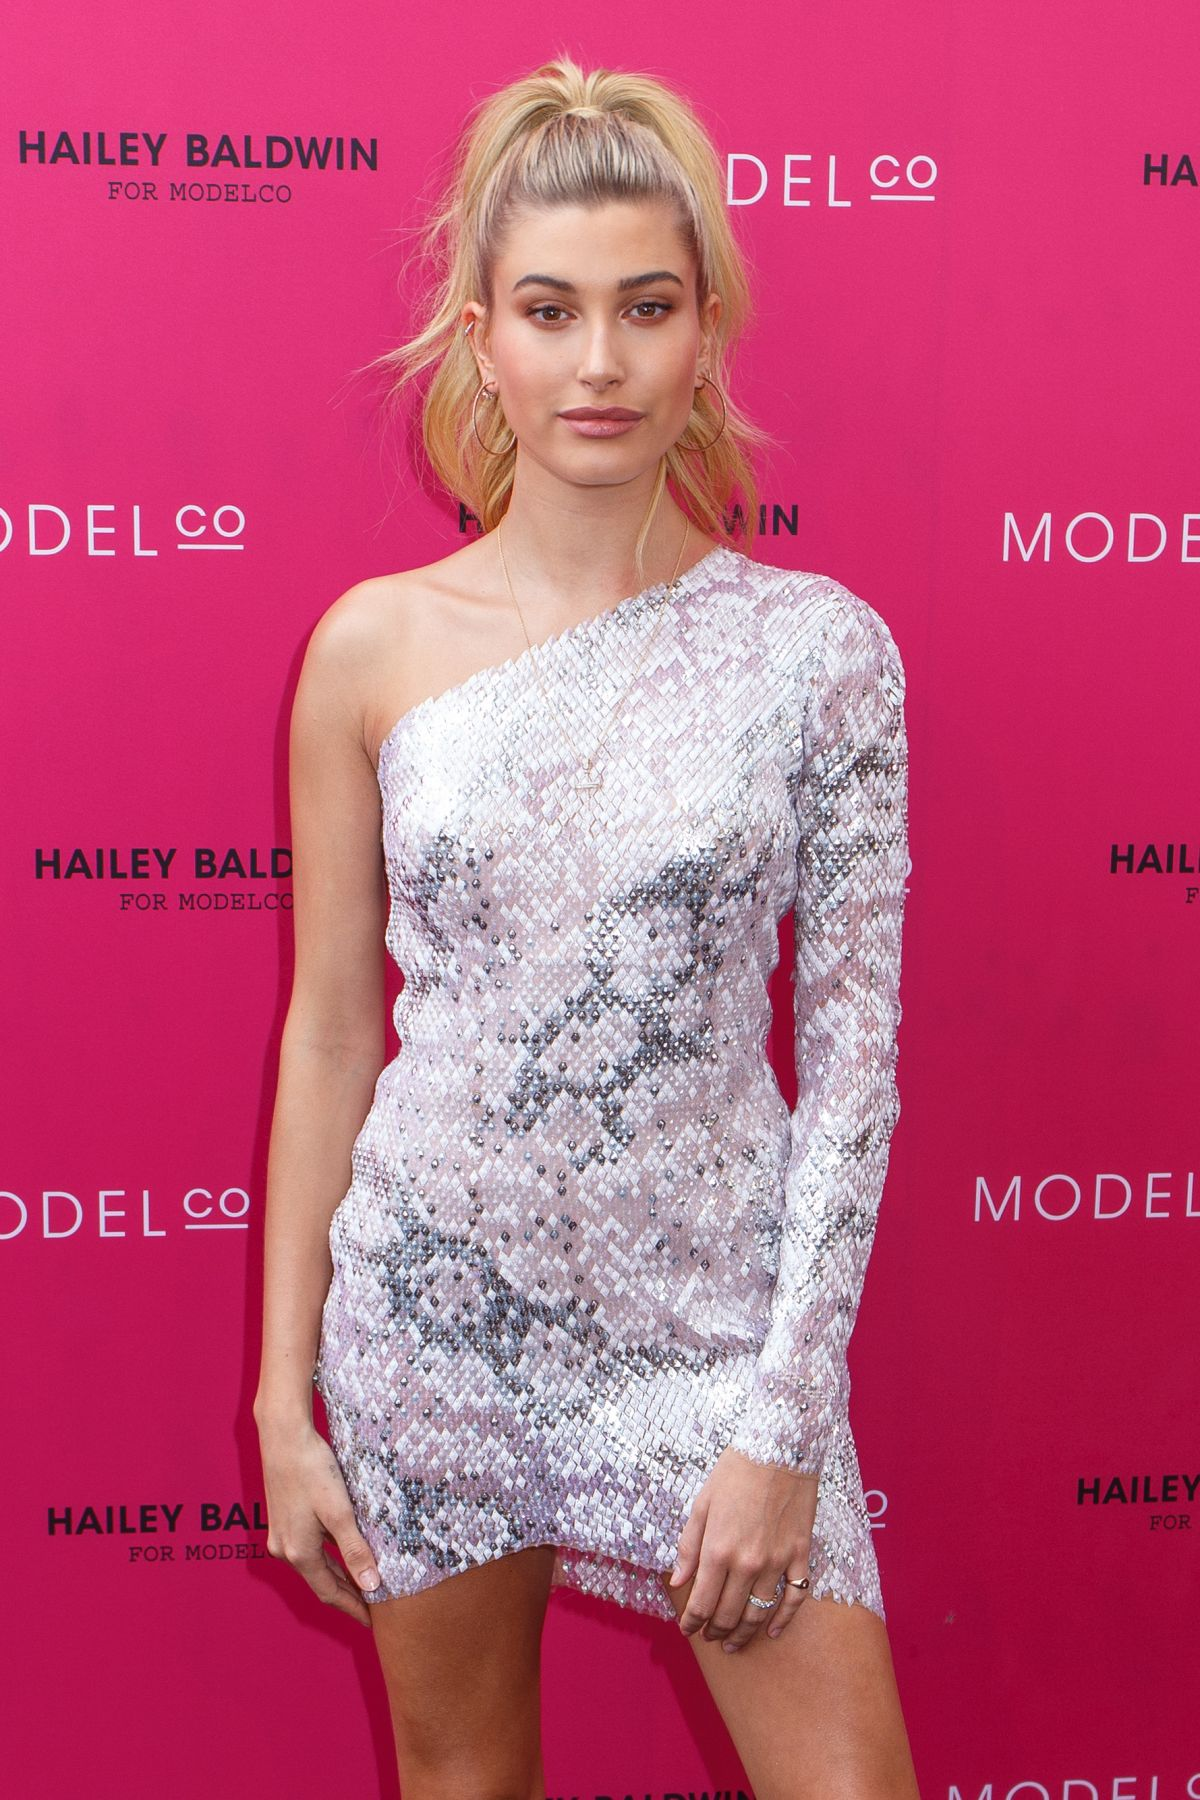 hailey-baldwin-at-hailey-baldwin-for-modelco-cosmetics-launch-in-sydney-12-05-2016_21